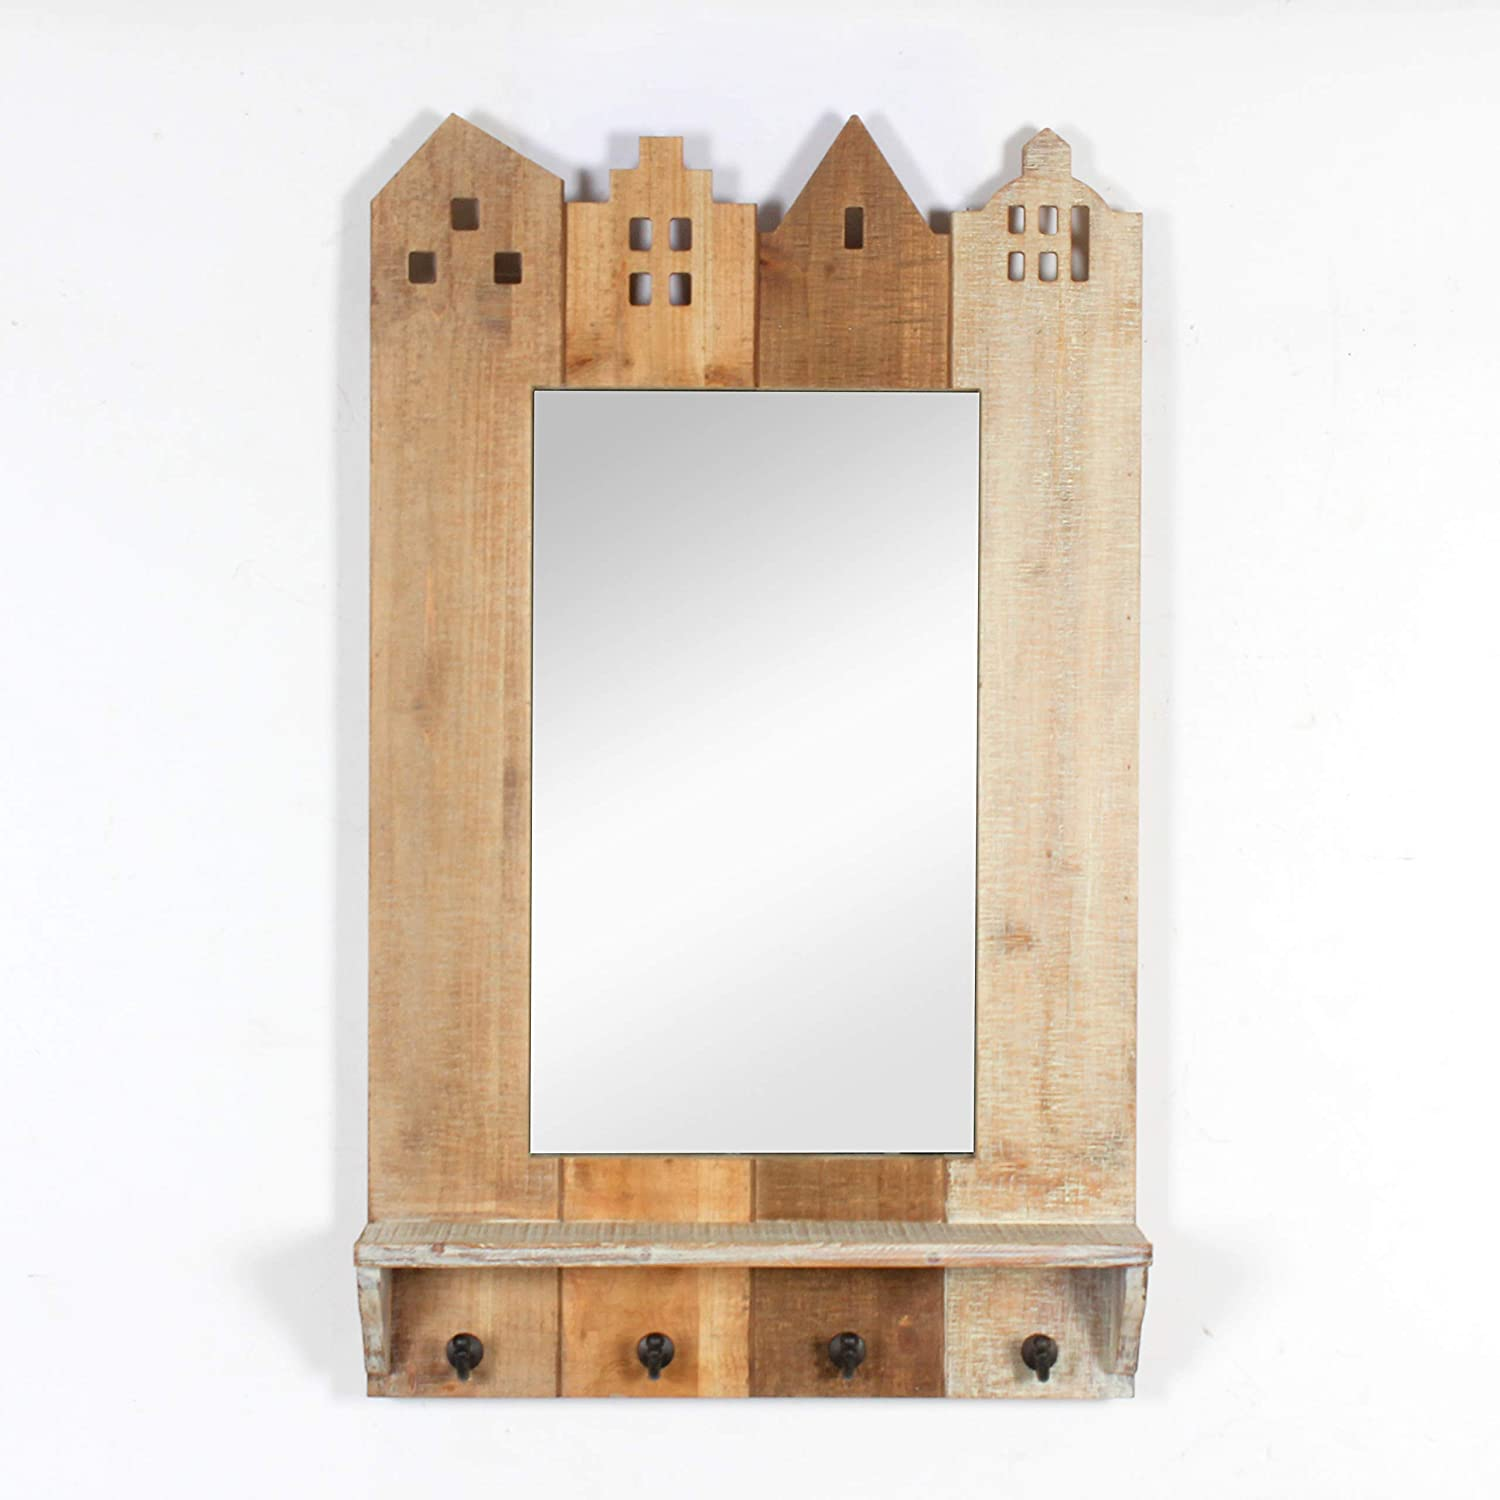 RHArt – Buildings Framed Wall Mirror with Shelf and 4 Hooks for Home Decor and Organization